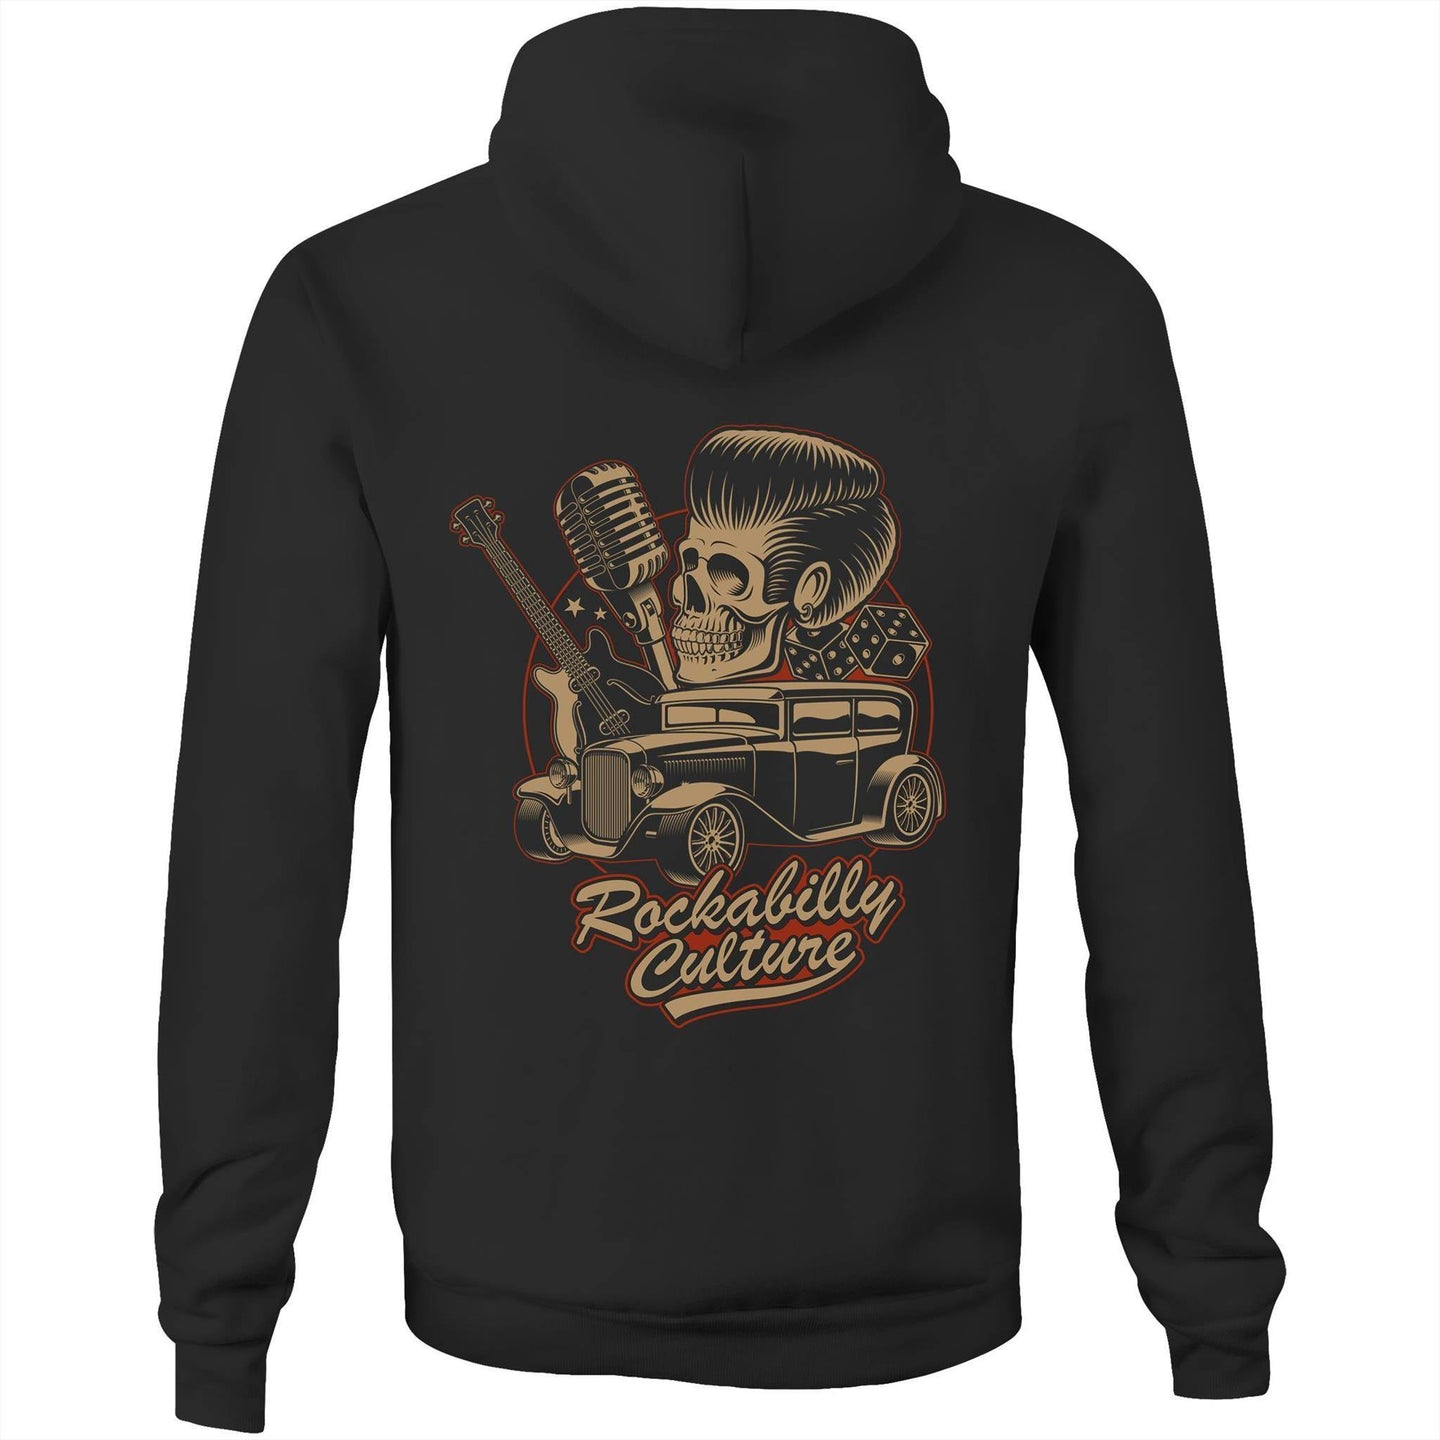 ROCKABILLY CULTURE - UNISEX FLEECY HOODIE